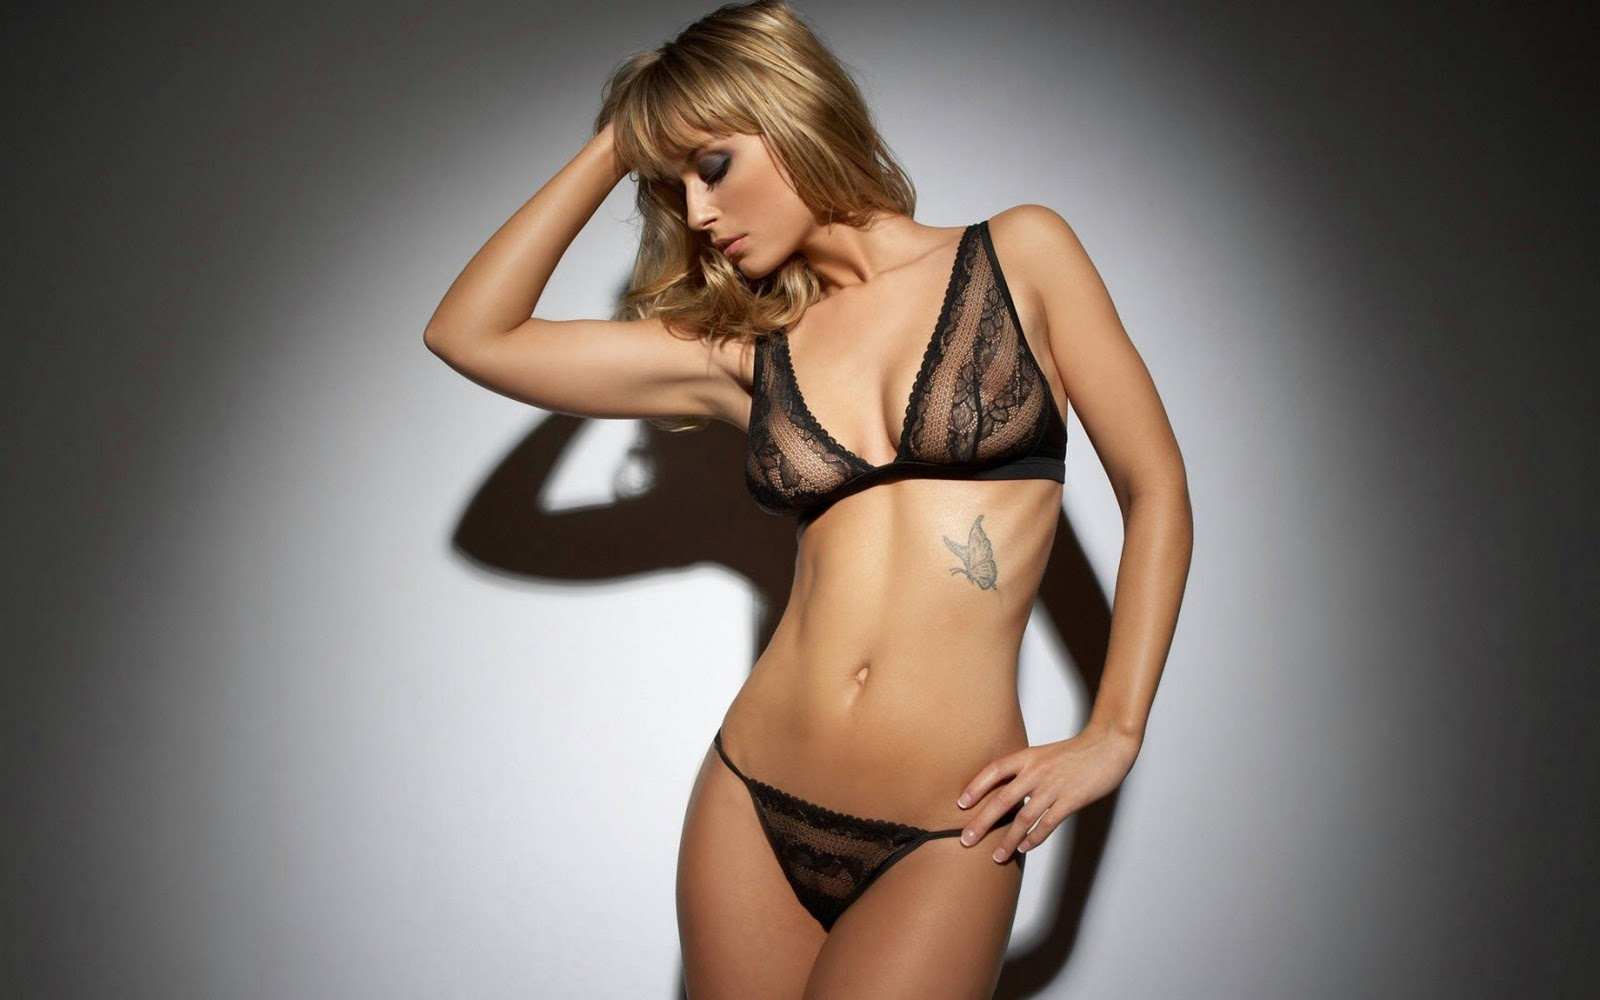 sexy girls wallpapers for desktop - download every thing freely